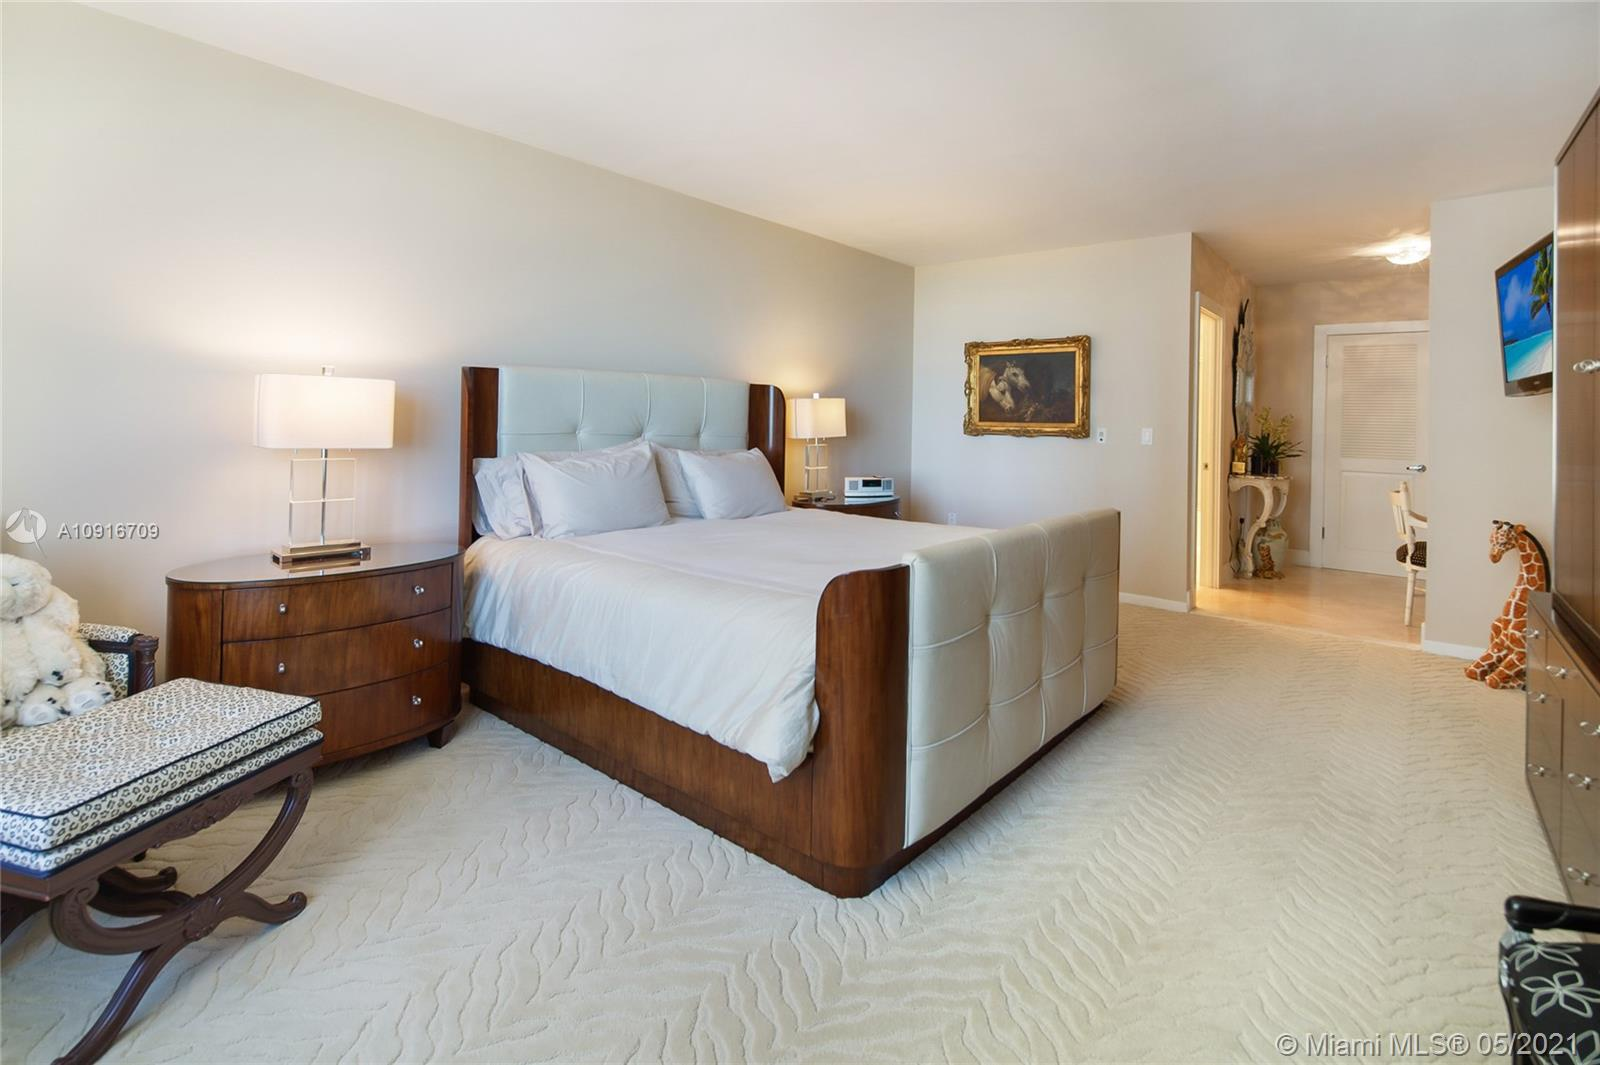 Photo of 9801 Collins Ave #11B Direct Ocean, Bal Harbour, Florida, 33154 - Master Bedroom looking direct Ocean views from your bed